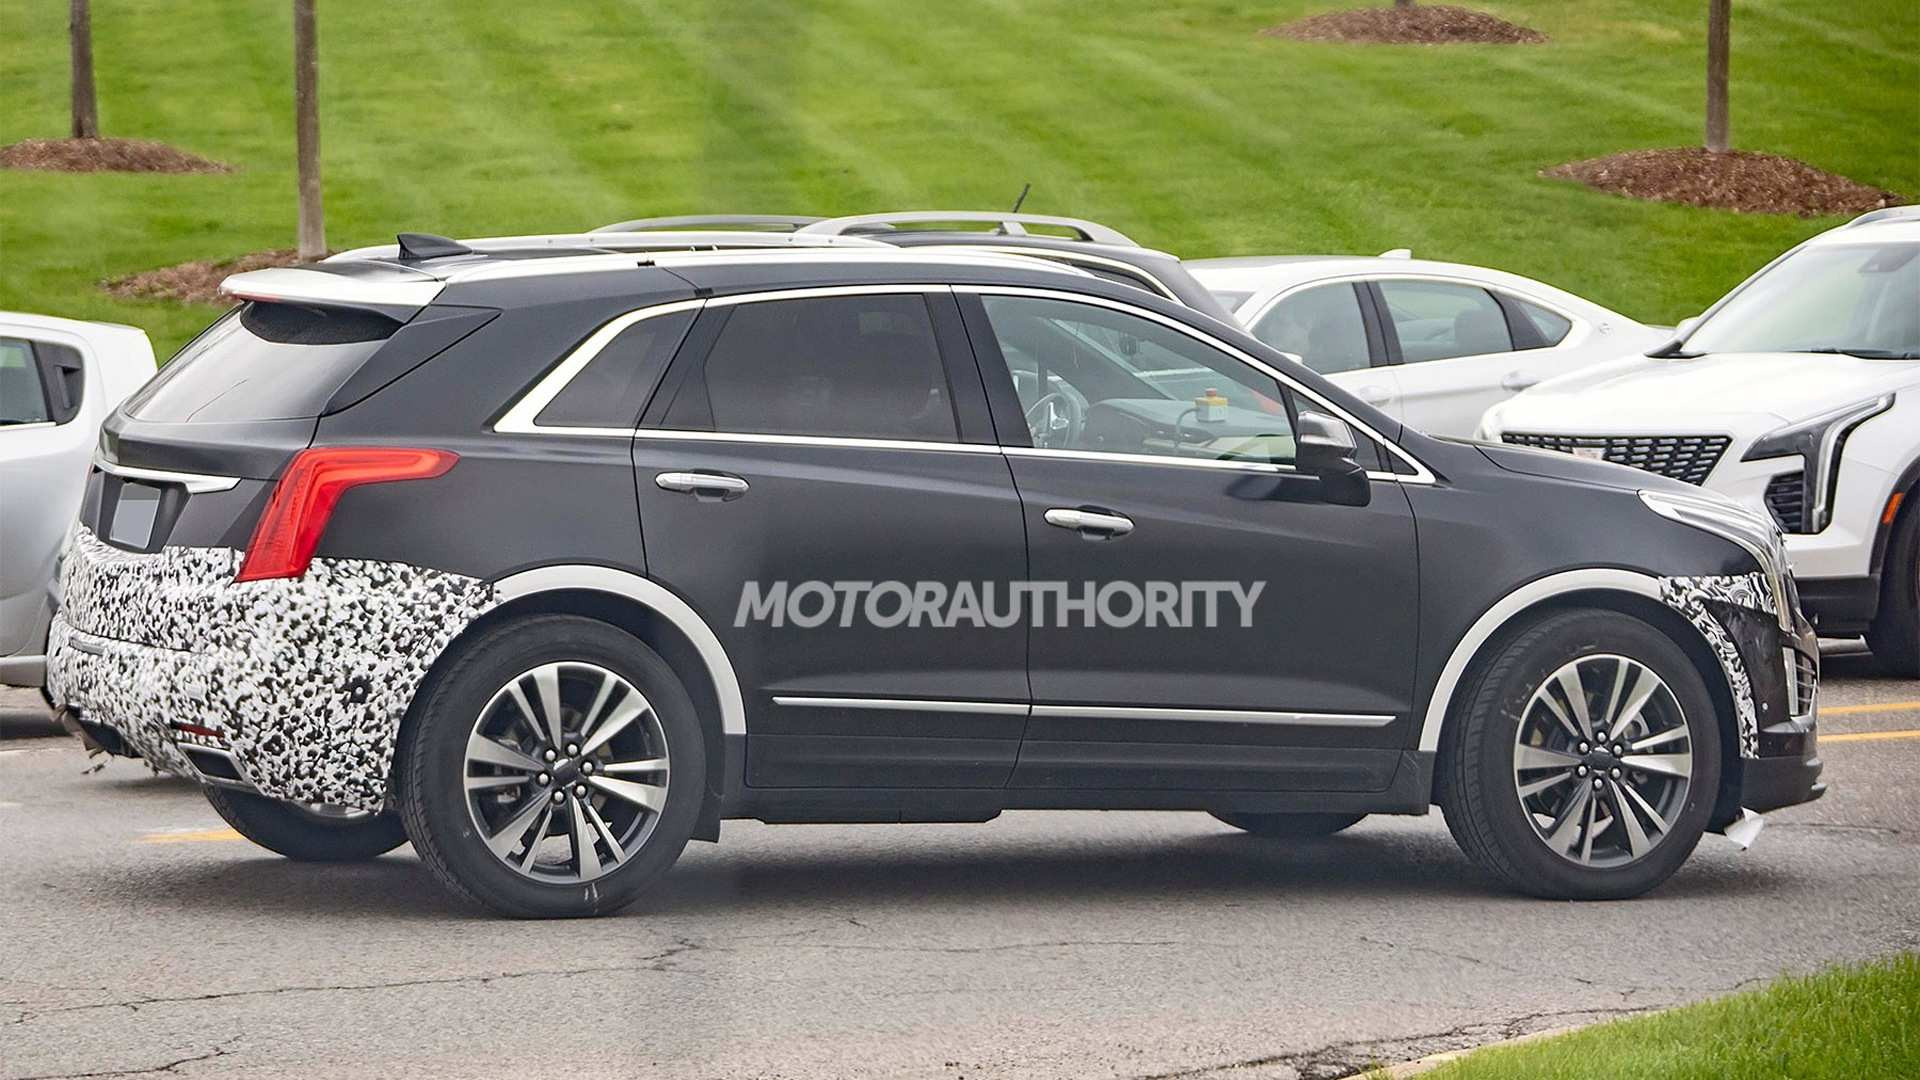 58 The Best When Will The 2020 Cadillac Xt5 Be Available Concept